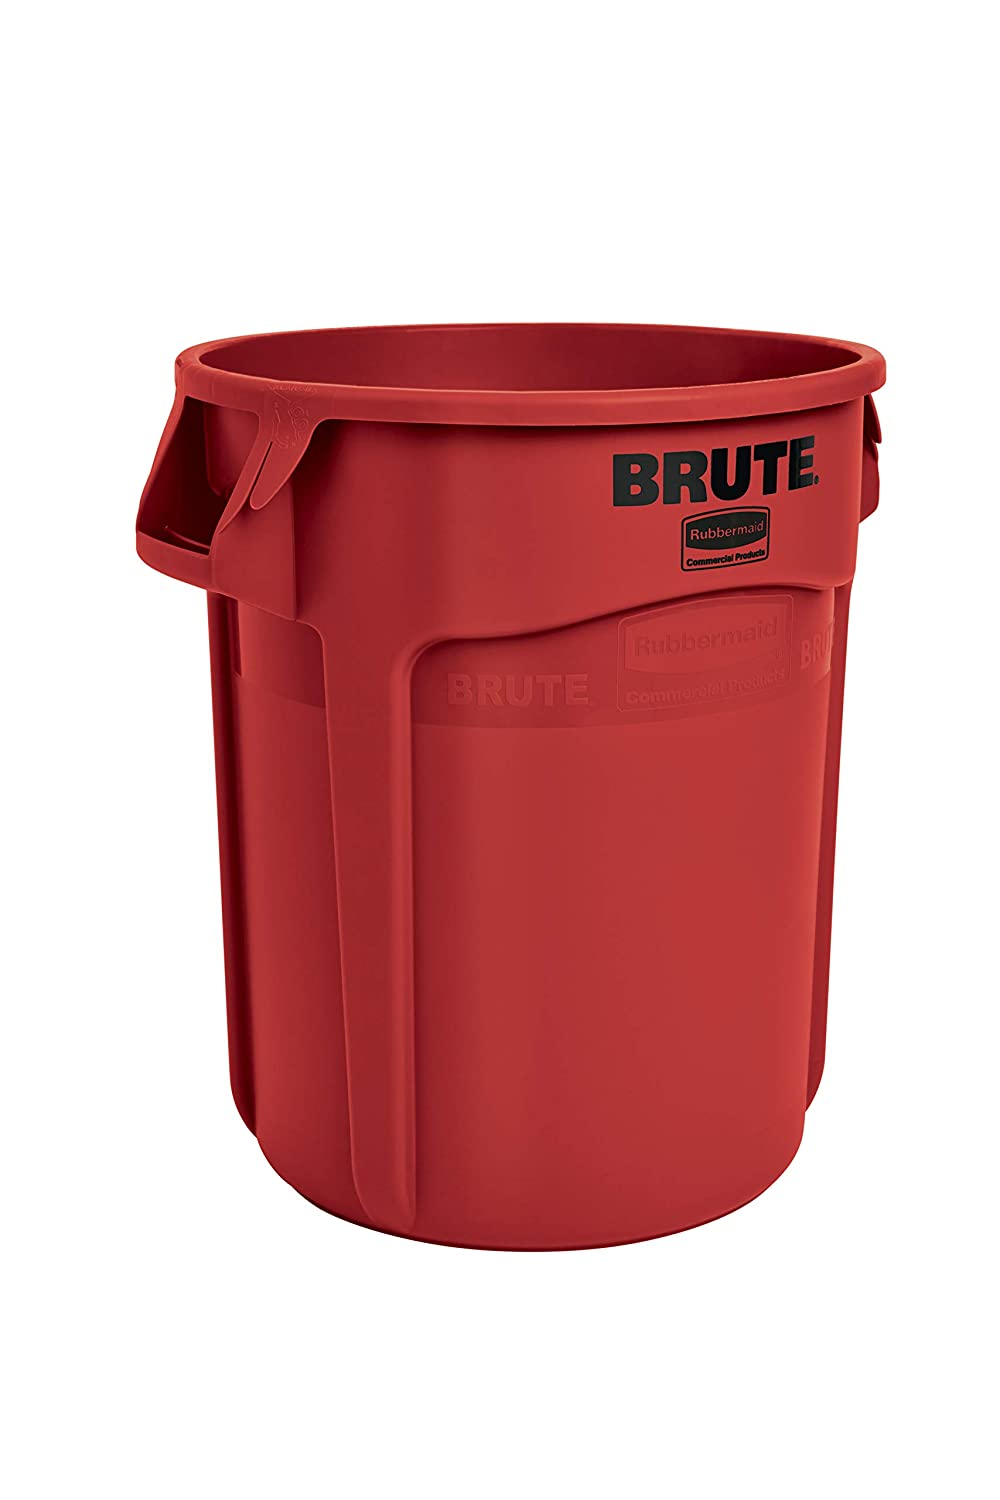 Rubbermaid Commercial Products FG261000RED BRUTE Heavy-Duty Round Trash/Garbage Can, 10-Gallon, Red